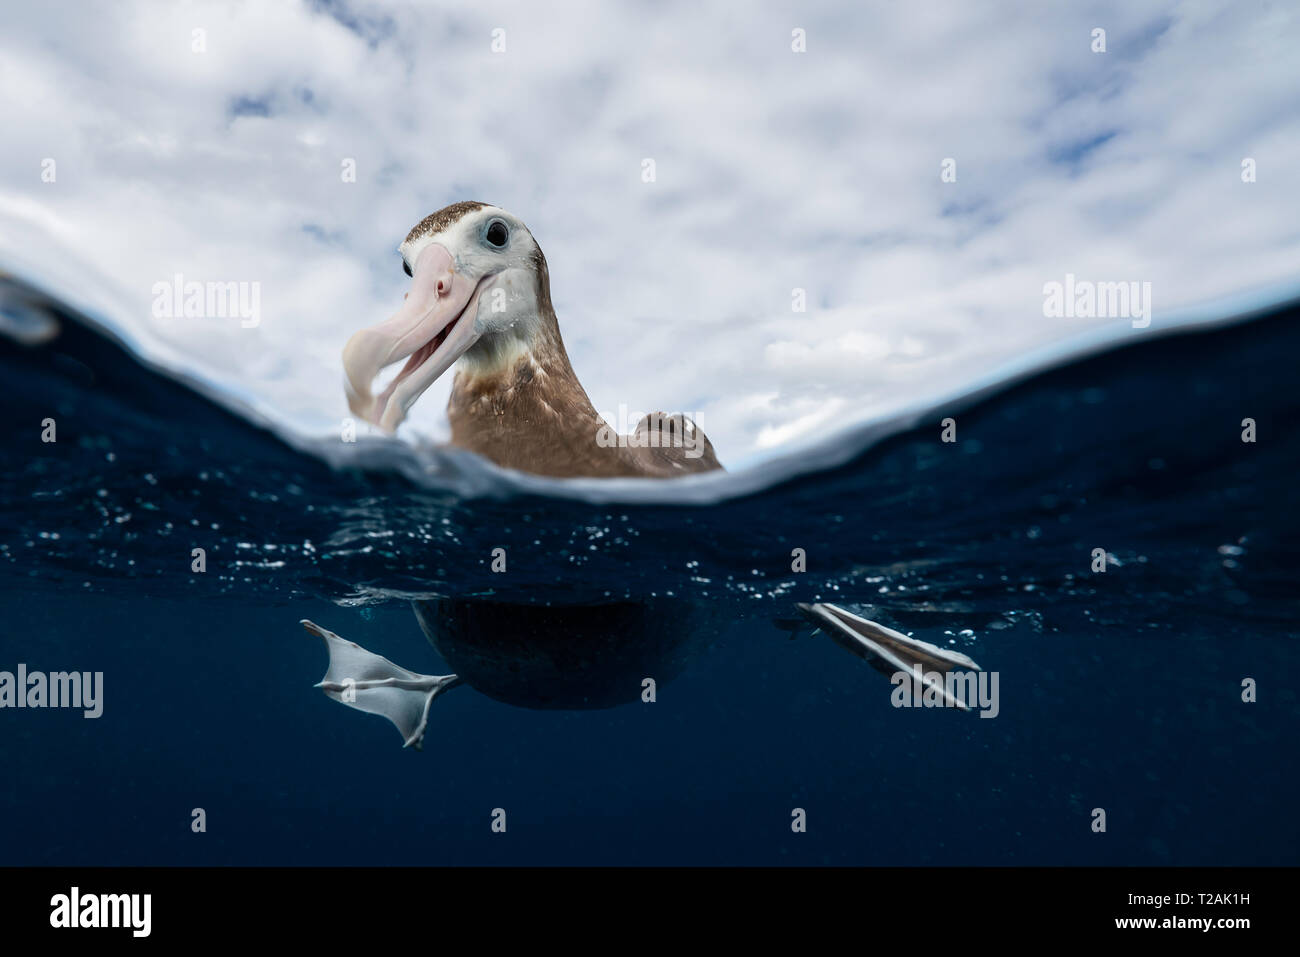 Split view of an Antipodean albatross resting on the water, Pacific Ocean, North Island, New Zealand. - Stock Image